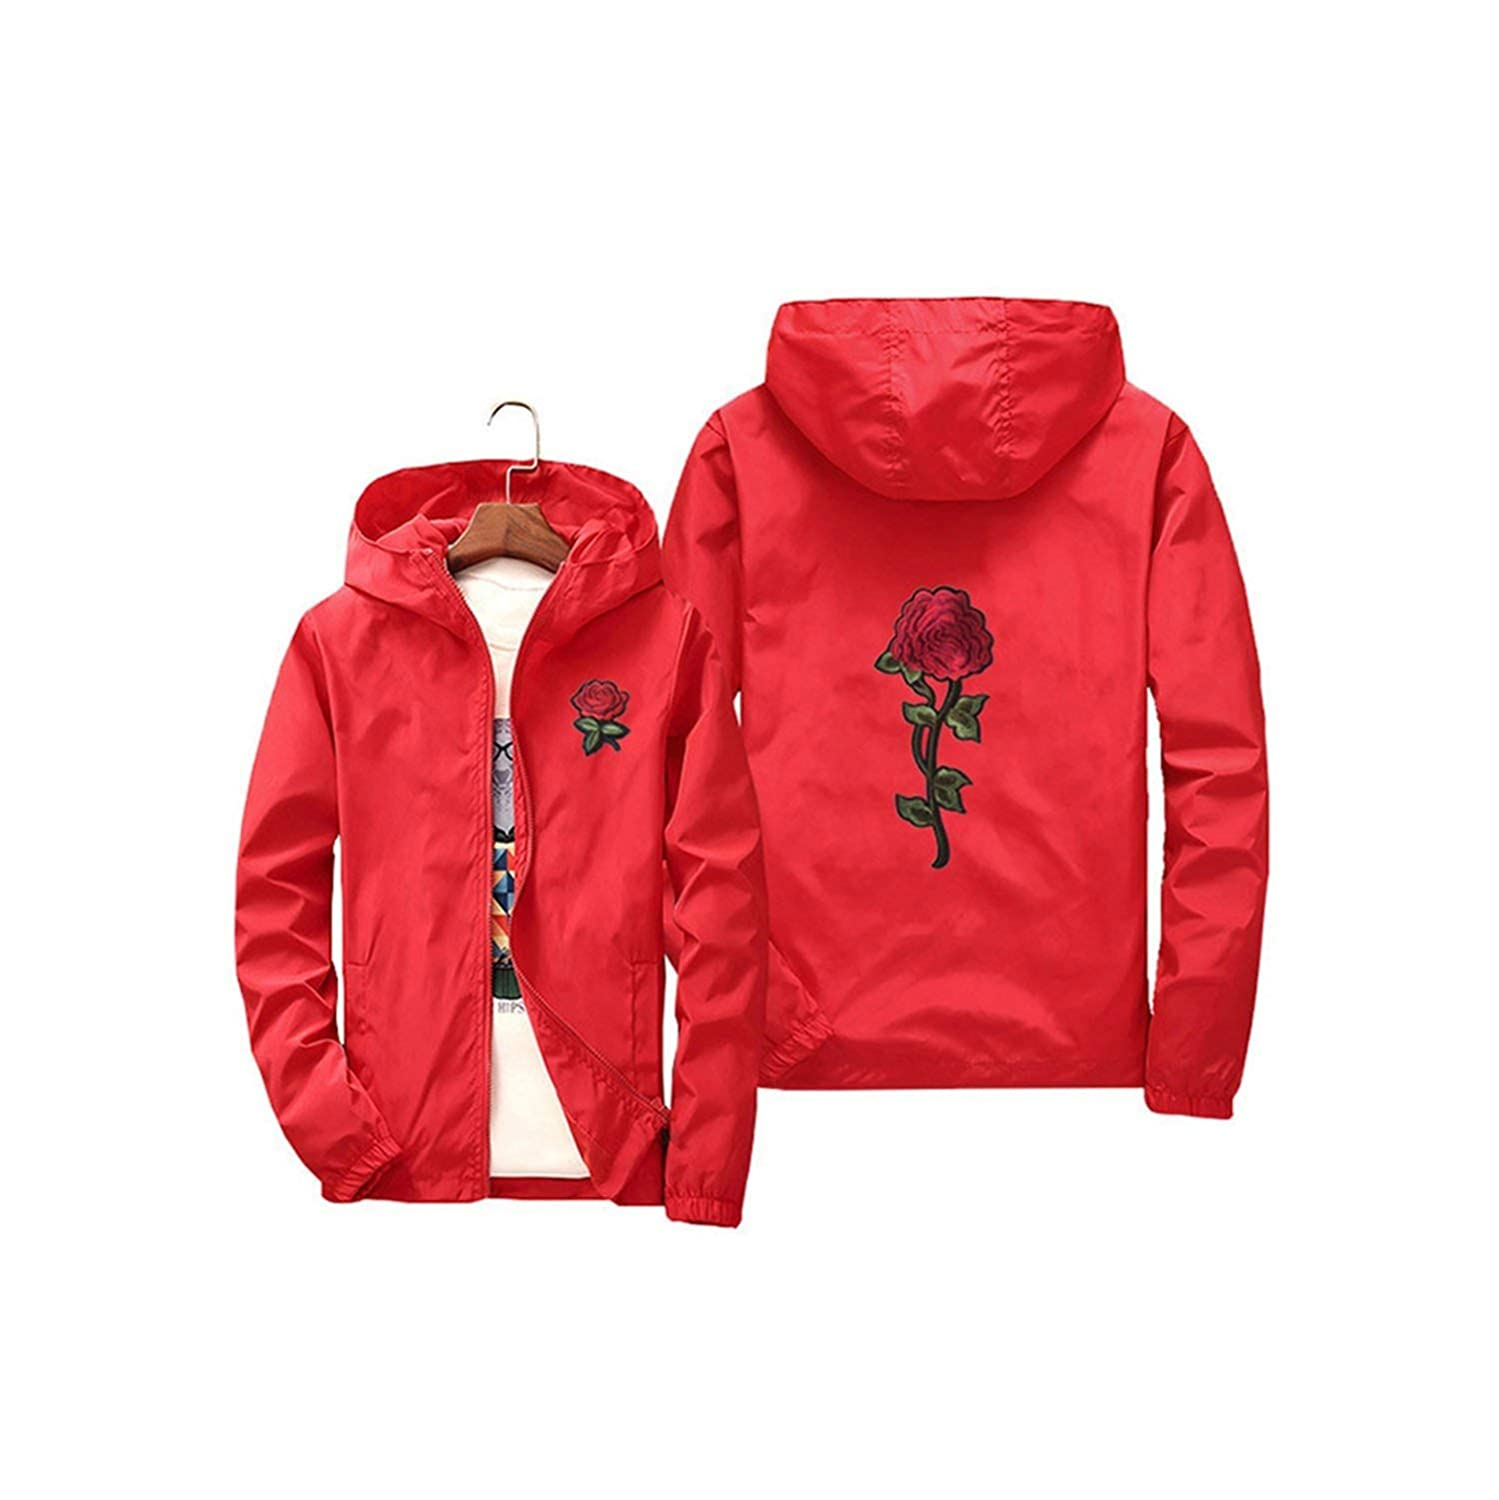 contentment Women Hooded Jacket Coats Embroidery Rose Casual